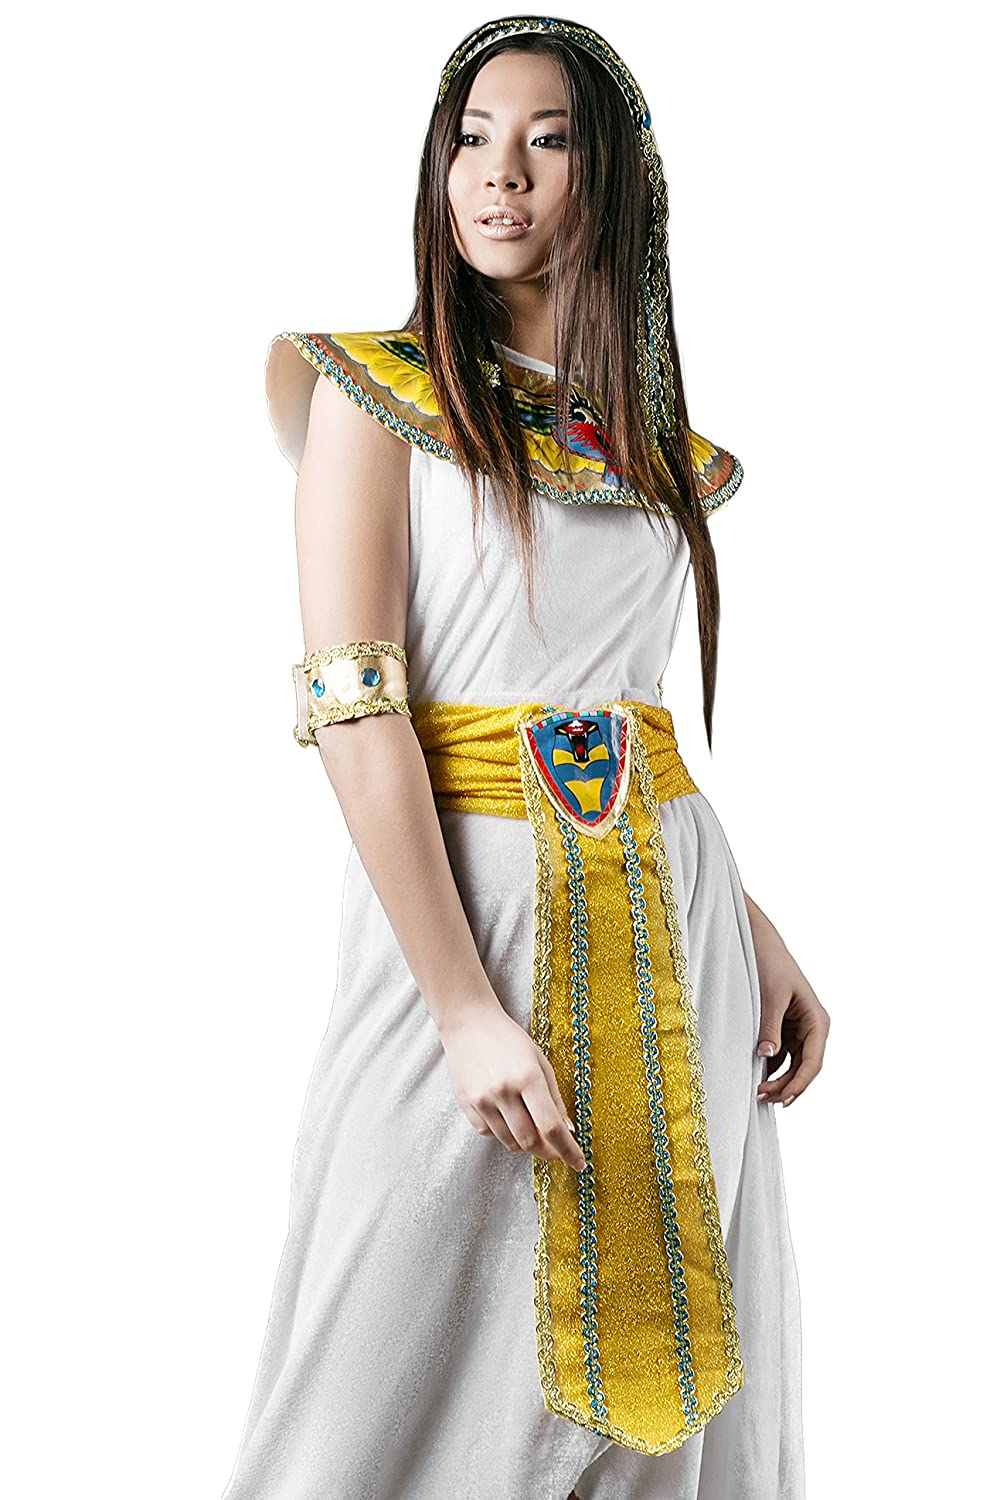 Adult Women Cleopatra Halloween Costume Great Isis Egyptian Dress Up u0026 Role Play  sc 1 st  Amazon.com & Amazon.com: Adult Women Hatshepsut Halloween Costume Egyptian ...